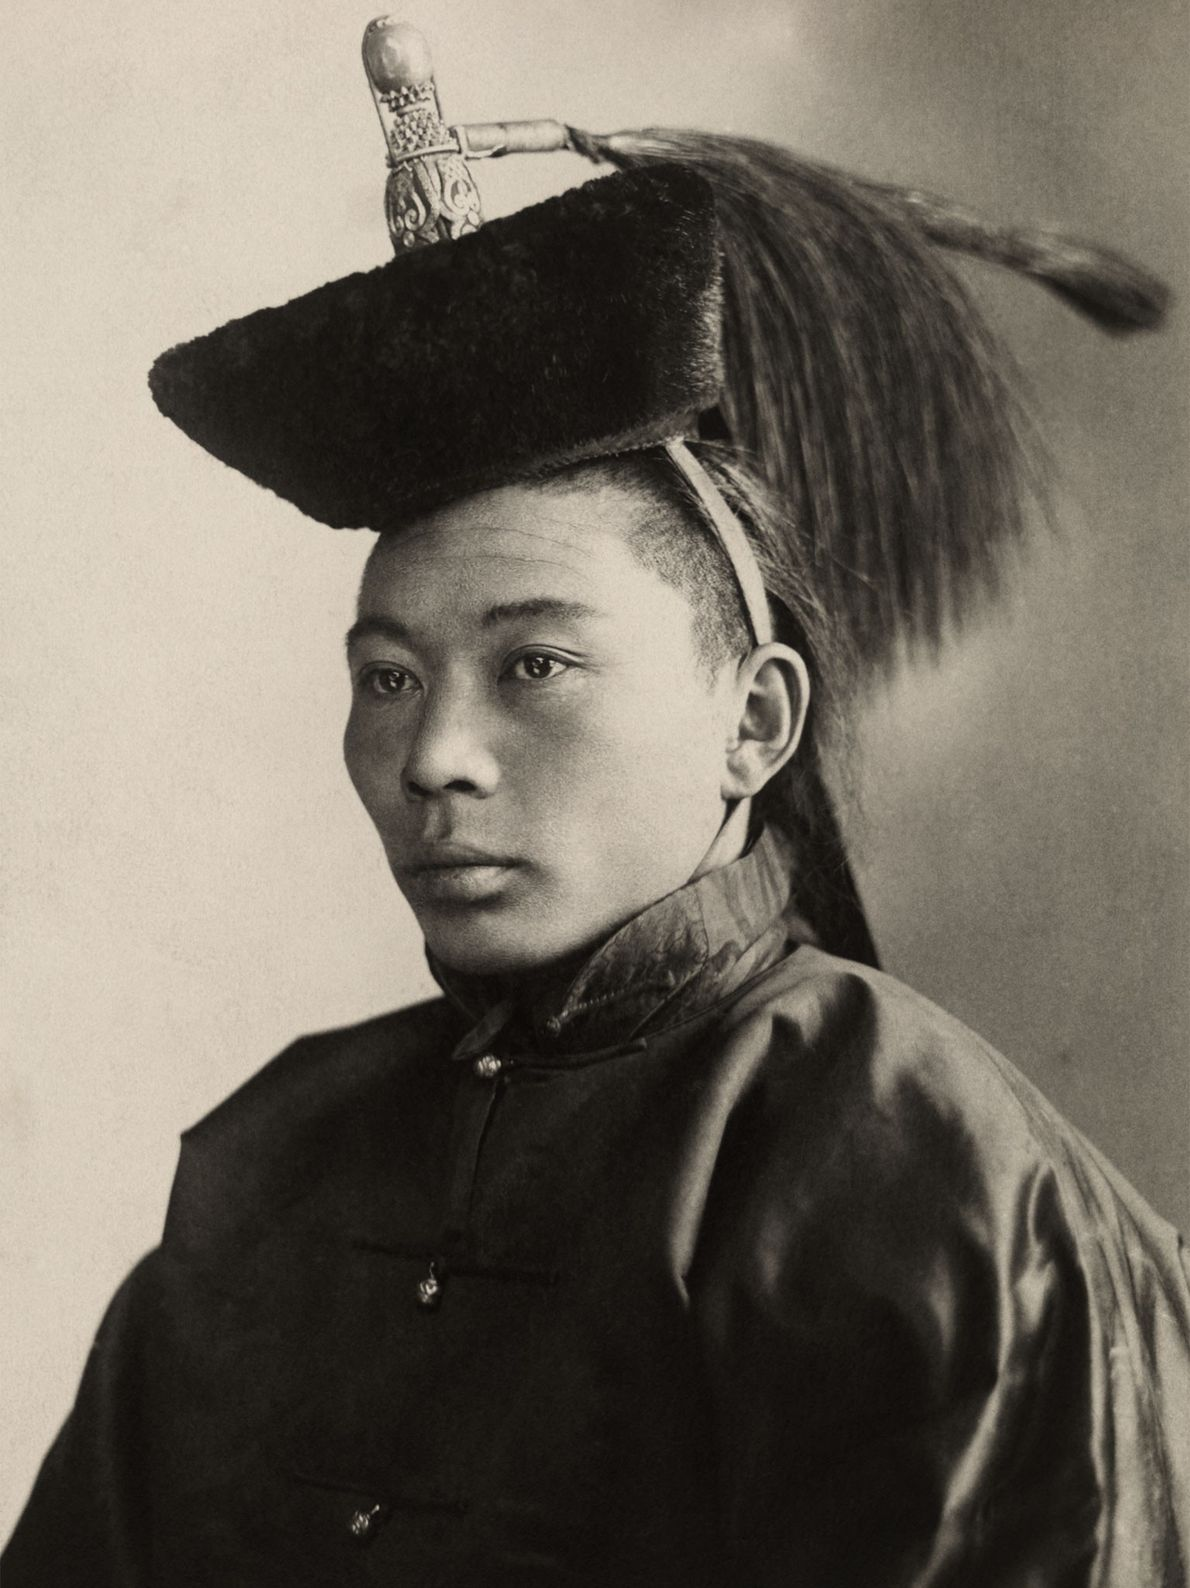 A young Mongolian prince poses for a picture, wearing a hat with embellishments that signifies his ...